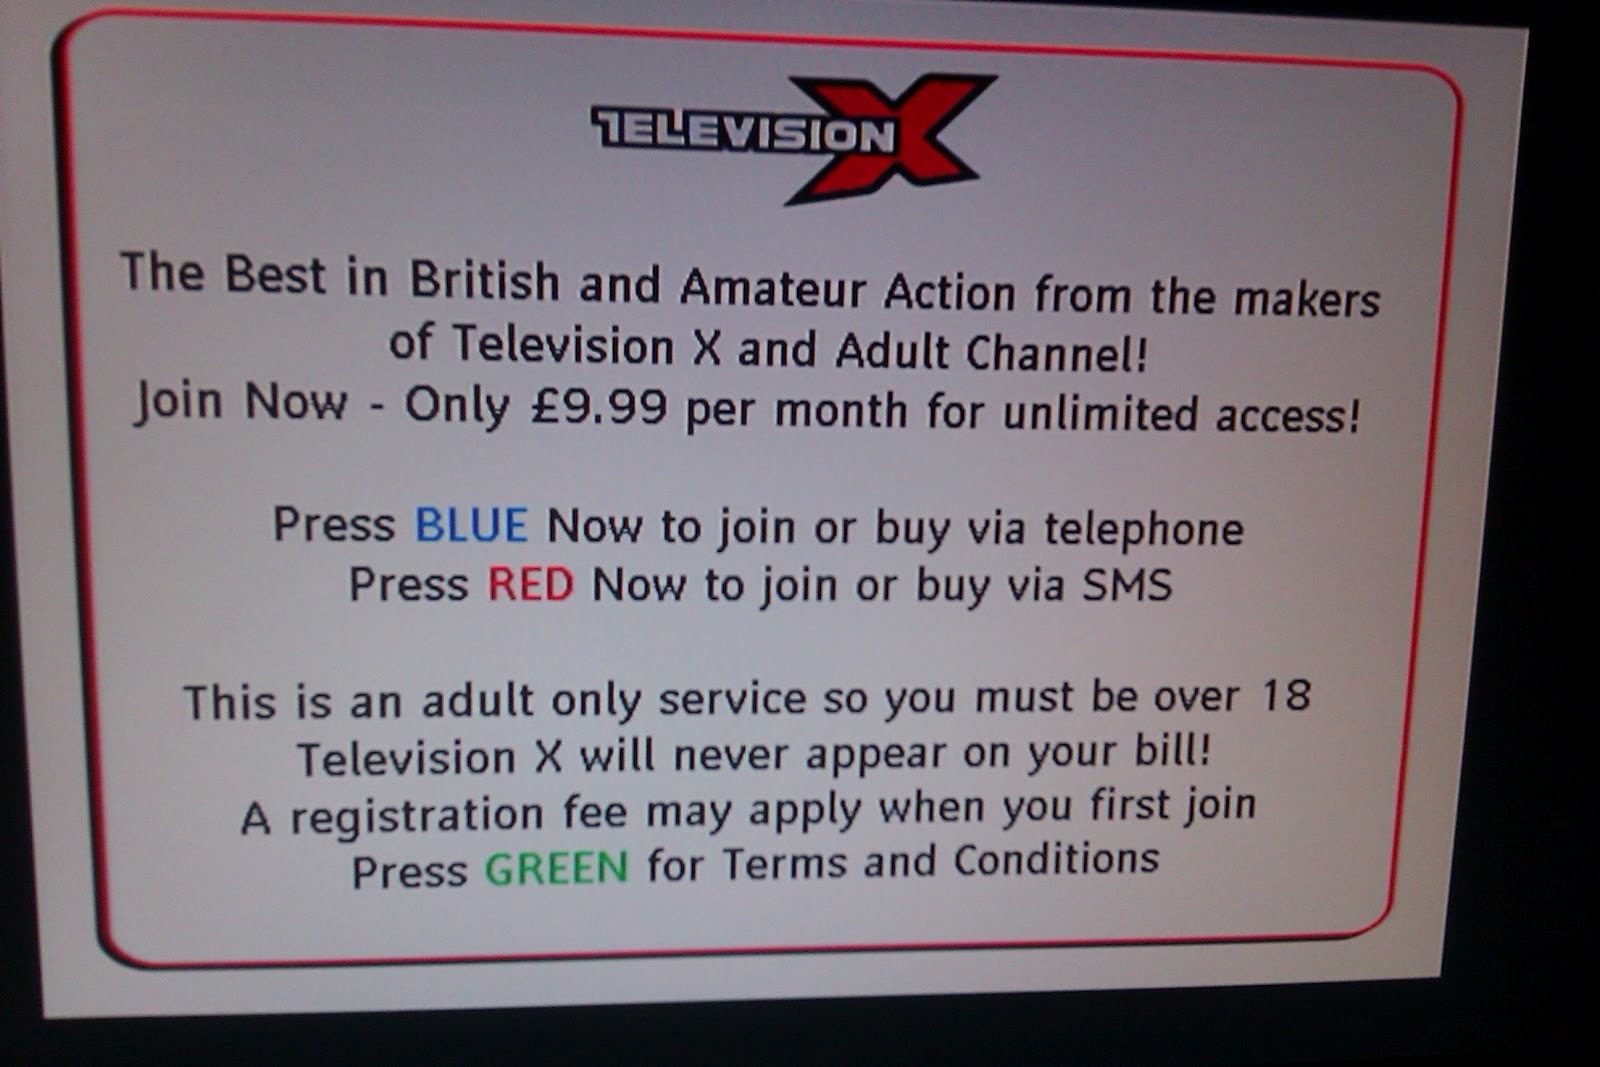 Channel television x the adult